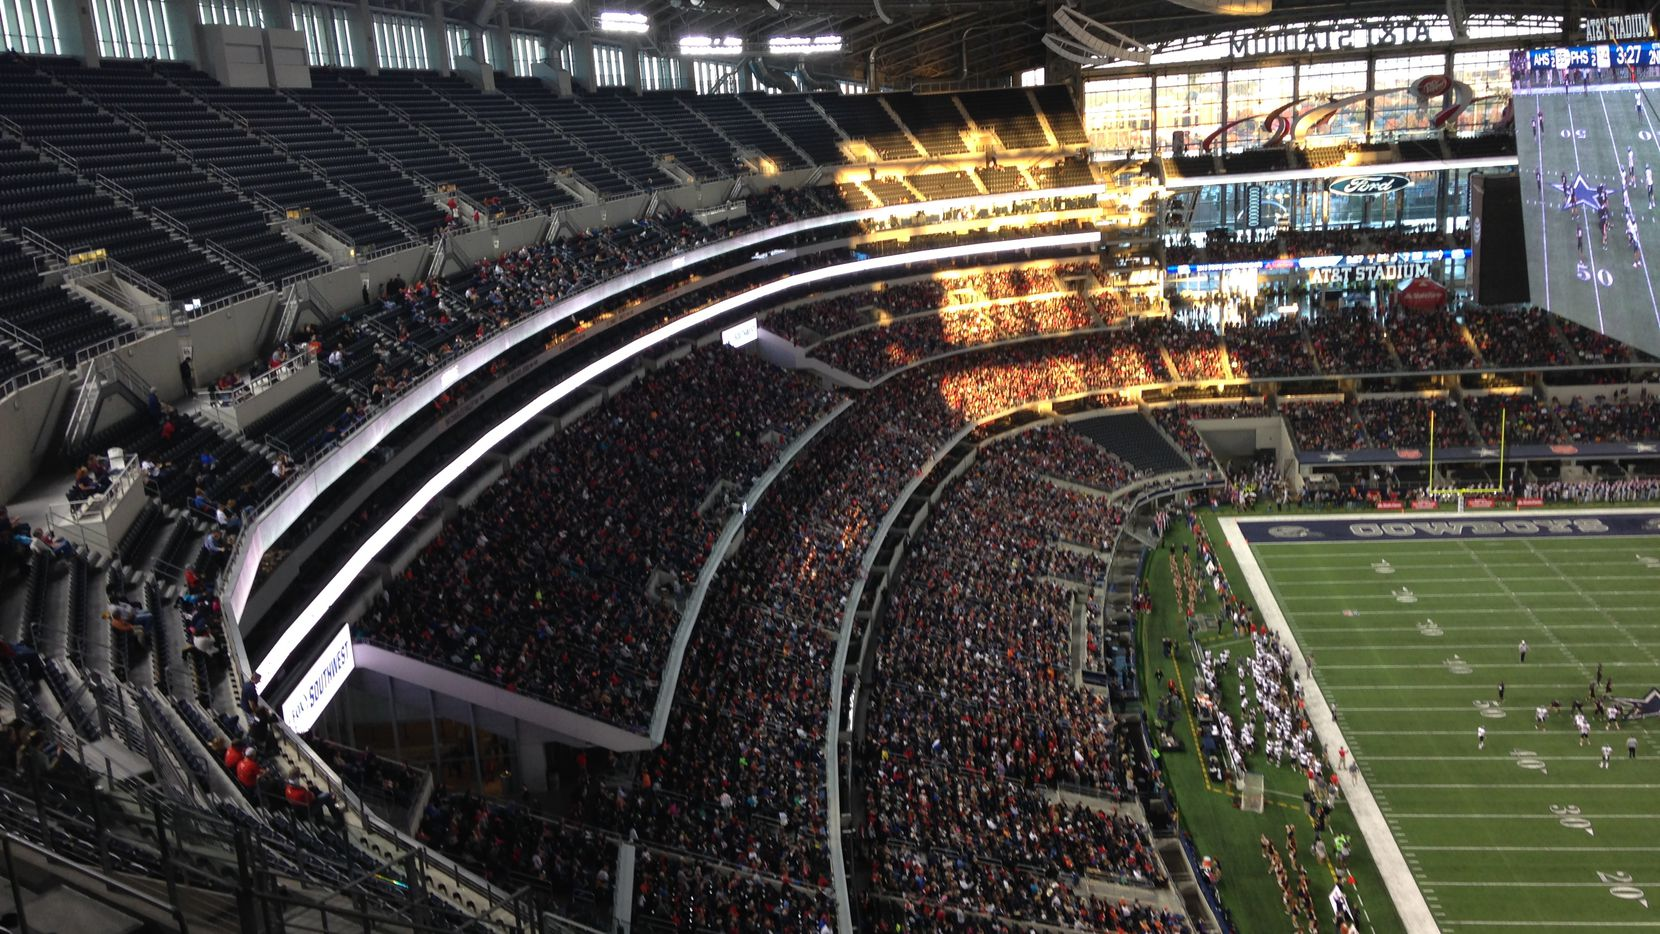 6a Championship Crowds Epitomize Majesty Of Texas High School Football Texas Hs Football